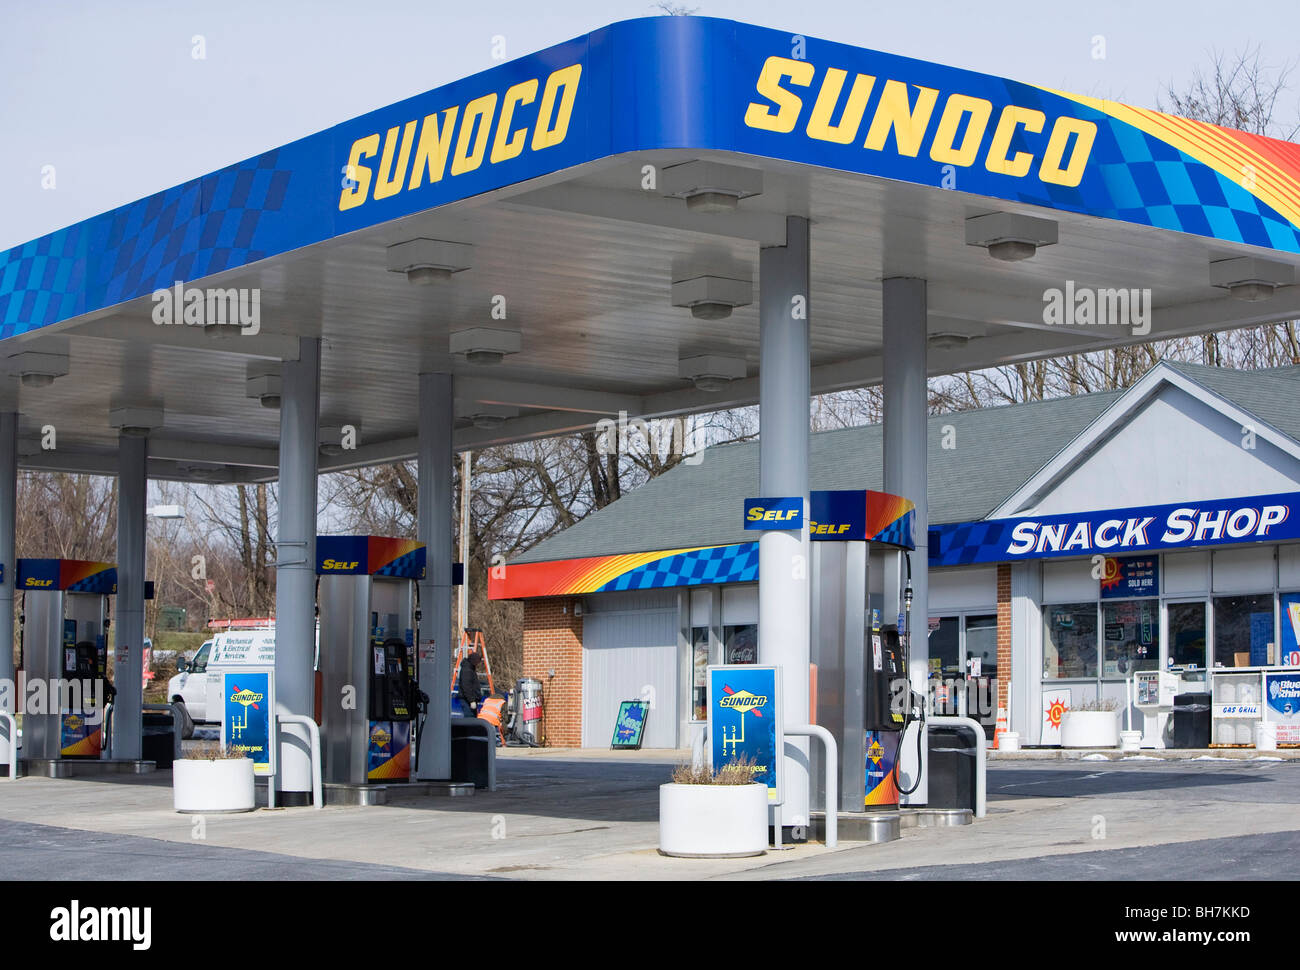 Sunoco Gas Station Near Me >> A Sunoco Gas Station In Suburban Maryland Stock Photo 27828625 Alamy